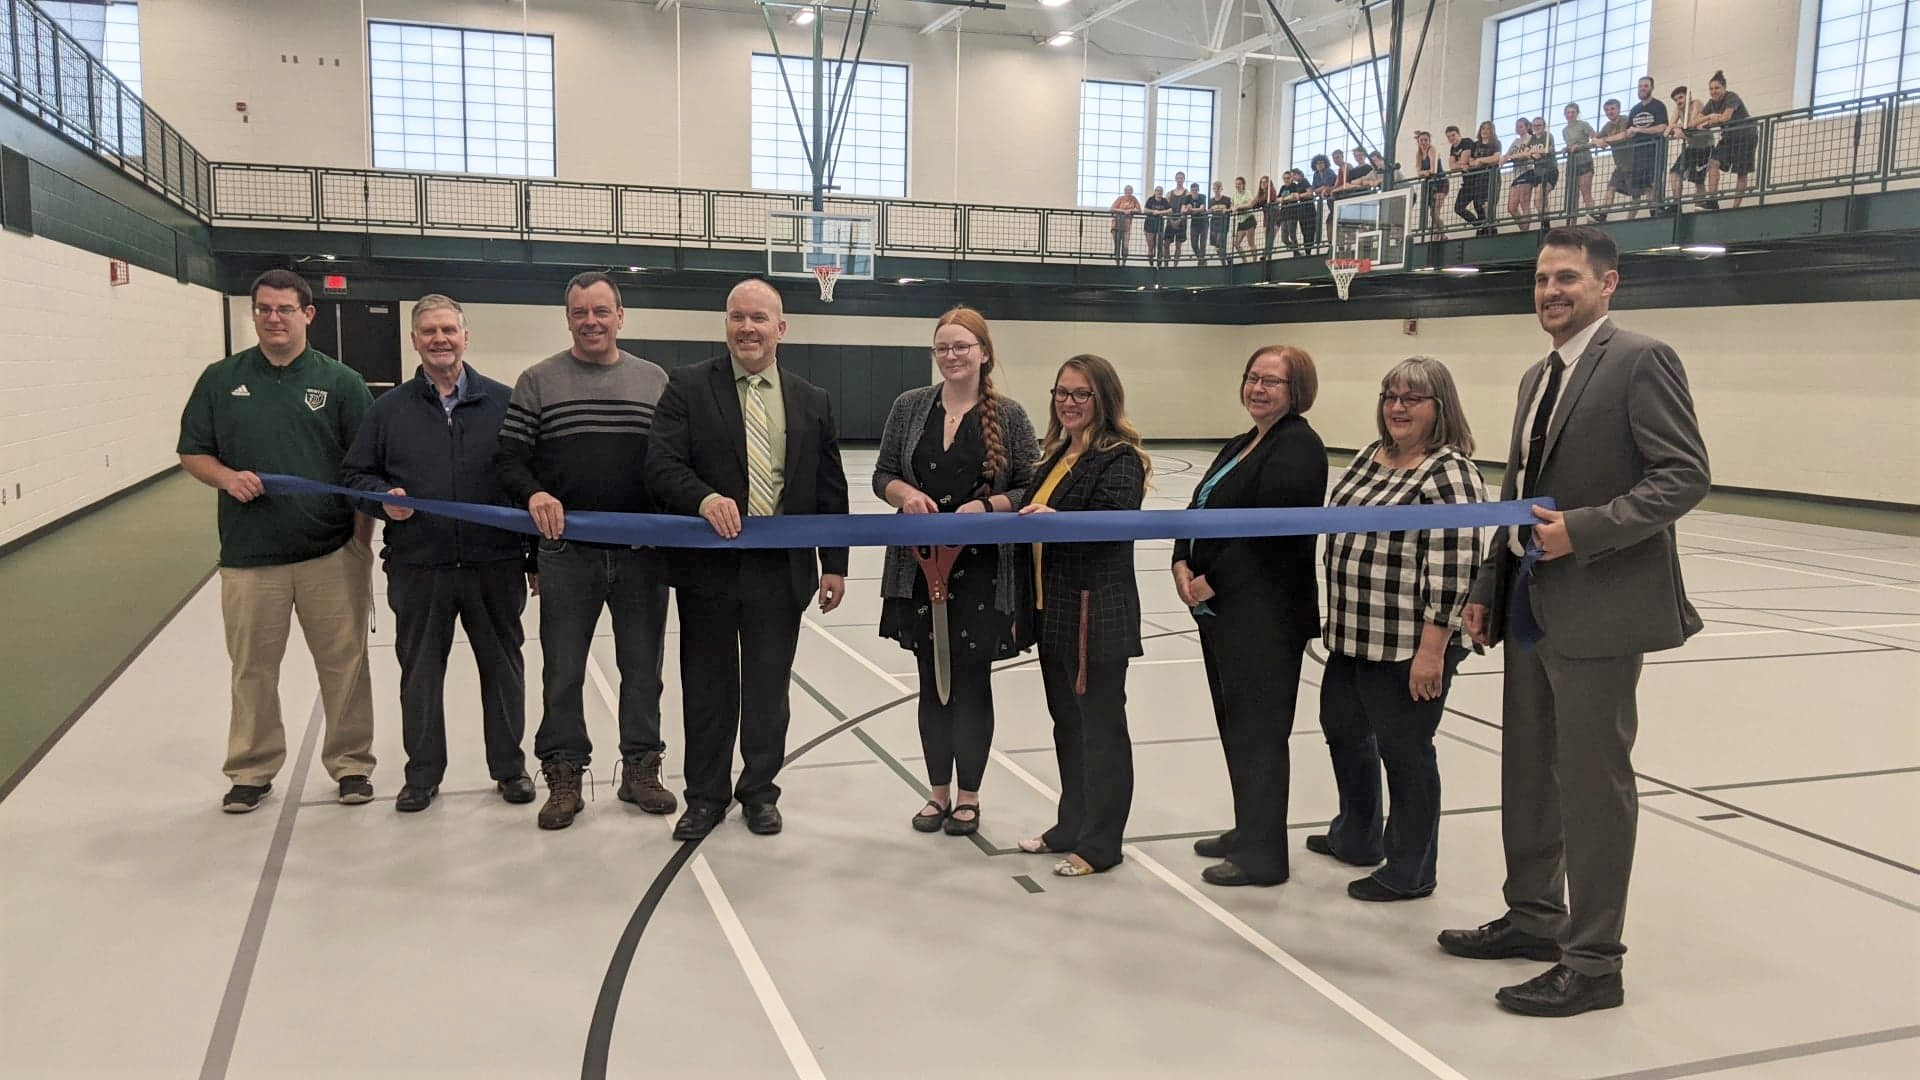 Ribbon cutting ceremony for opening of the VAC